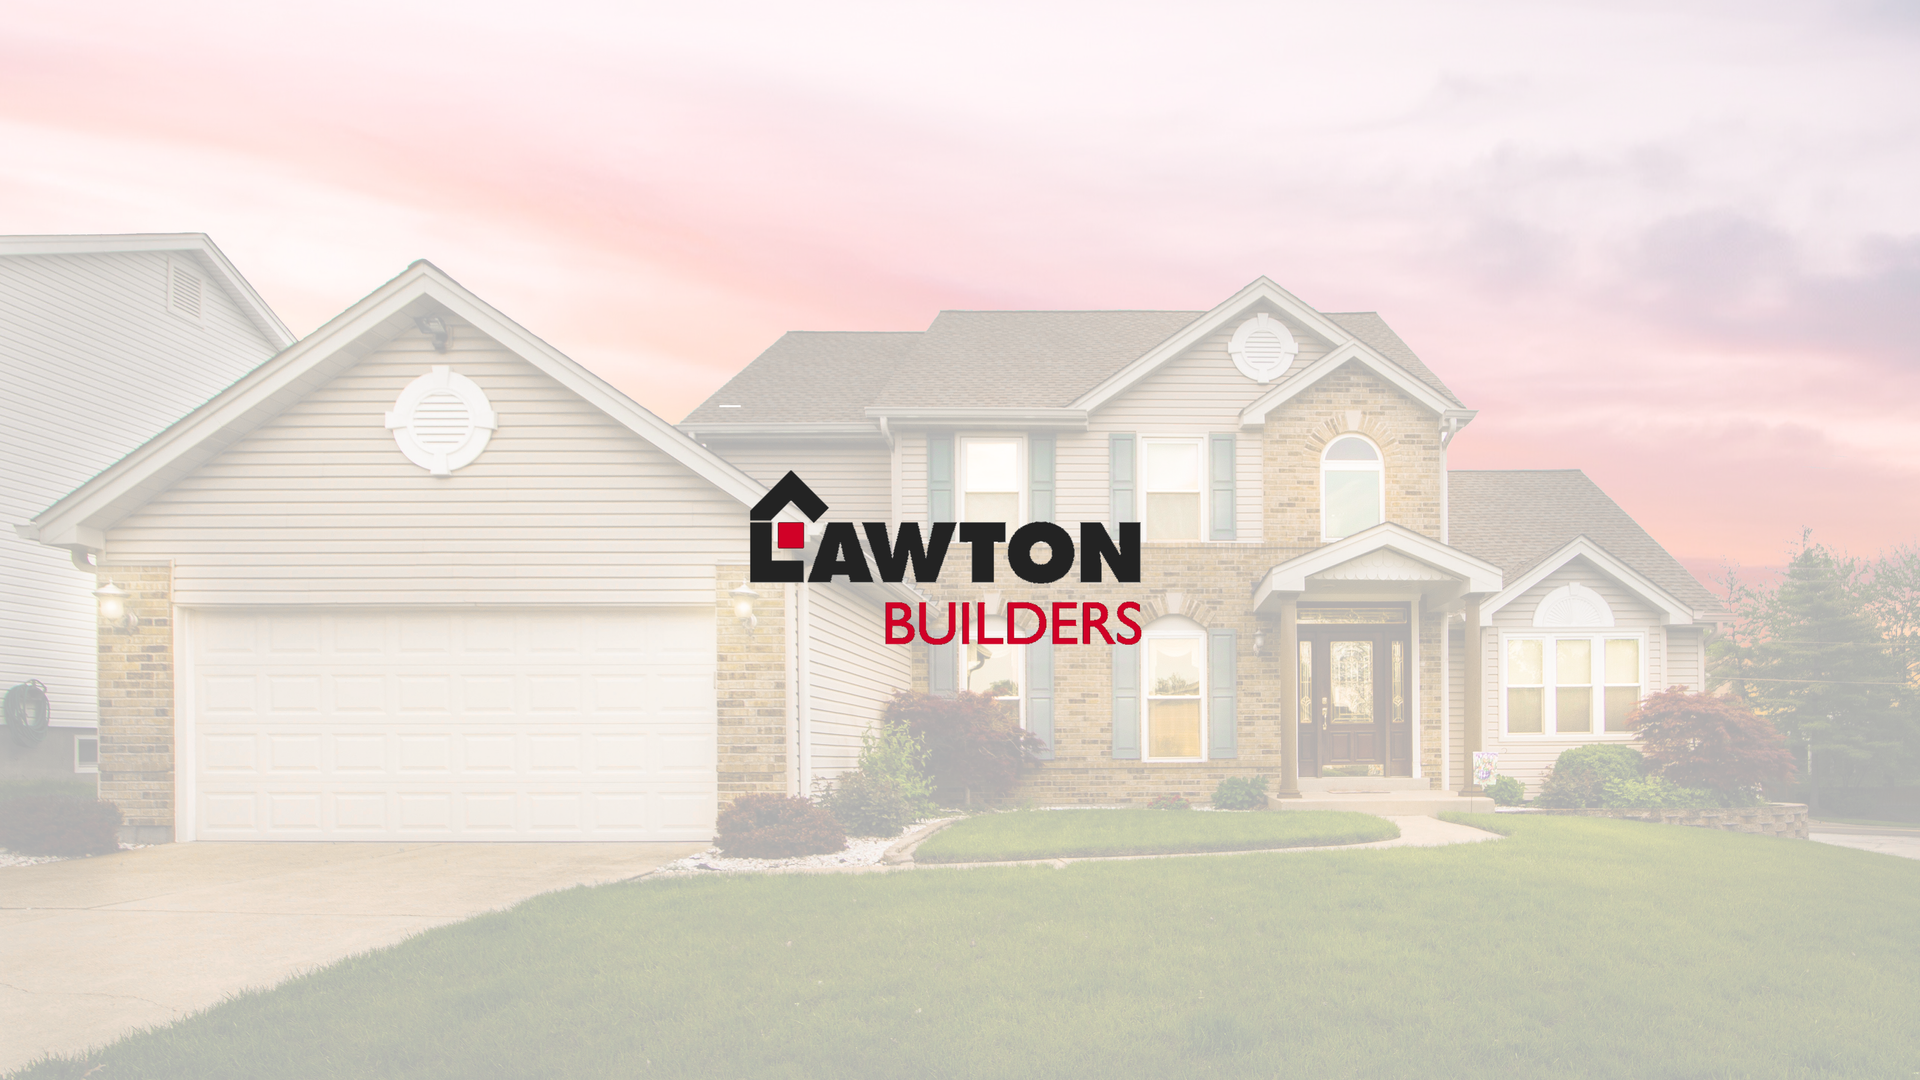 Lawton Builders